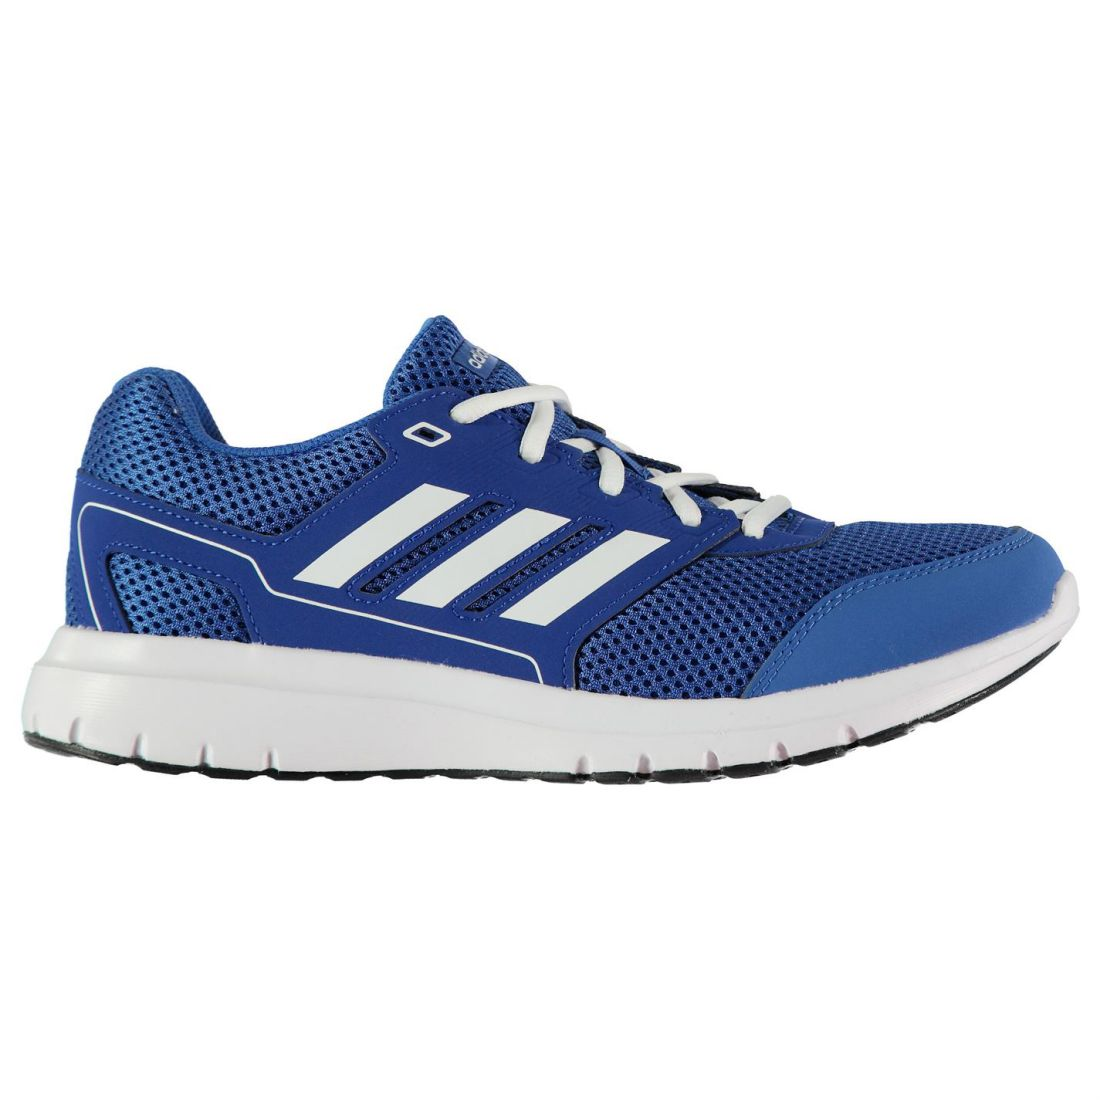 pretty nice 87a4a 6cb1b adidas Duramo Lite 2 Sneakers Mens Gents Runners Laces Fastened Ventilated  Mesh 2 2 sur 5 ...